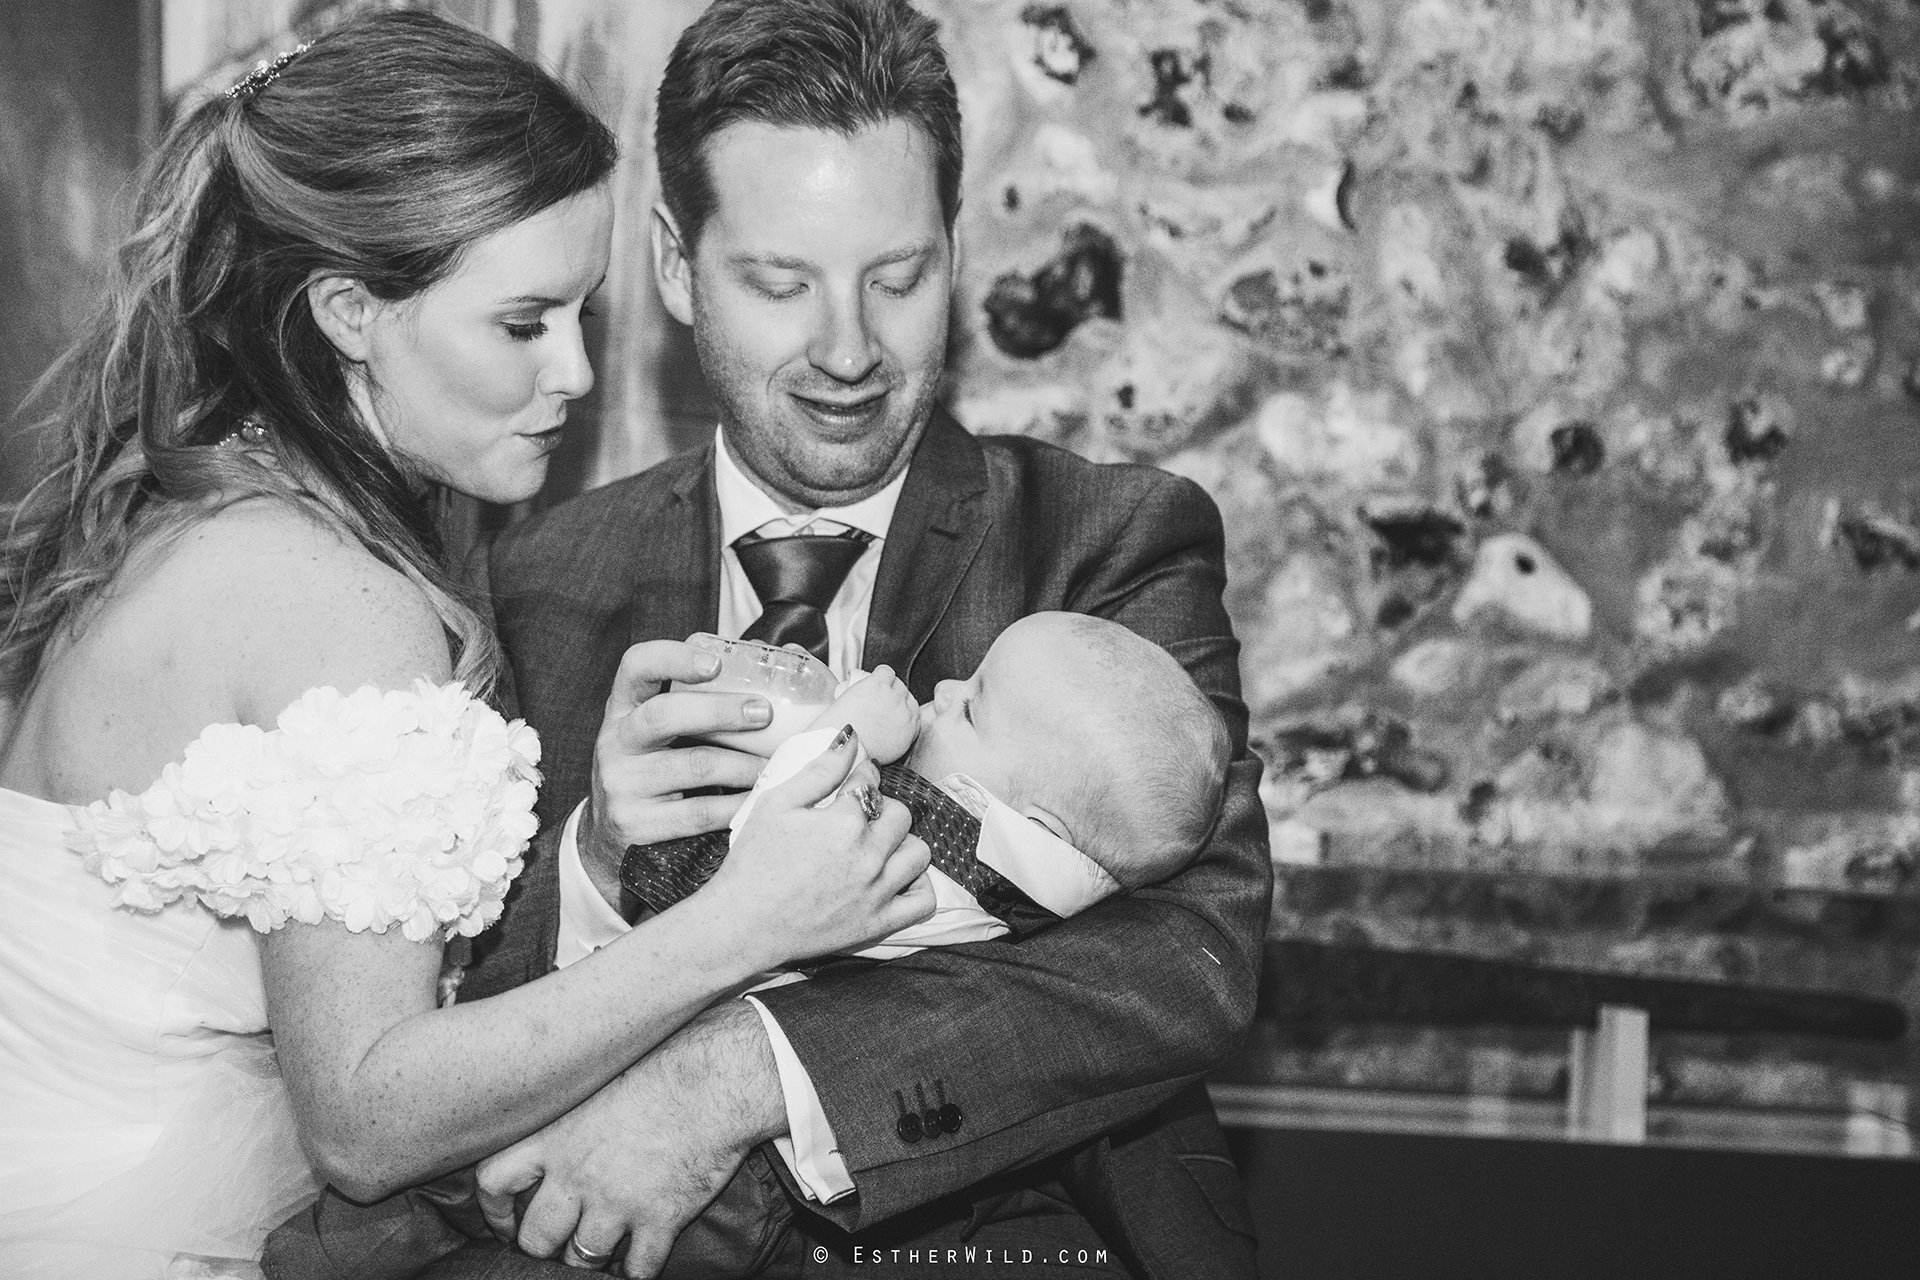 wedding_norwich_castle_norfolk_esther_wild_photographer_norfolk_brides (29).jpg